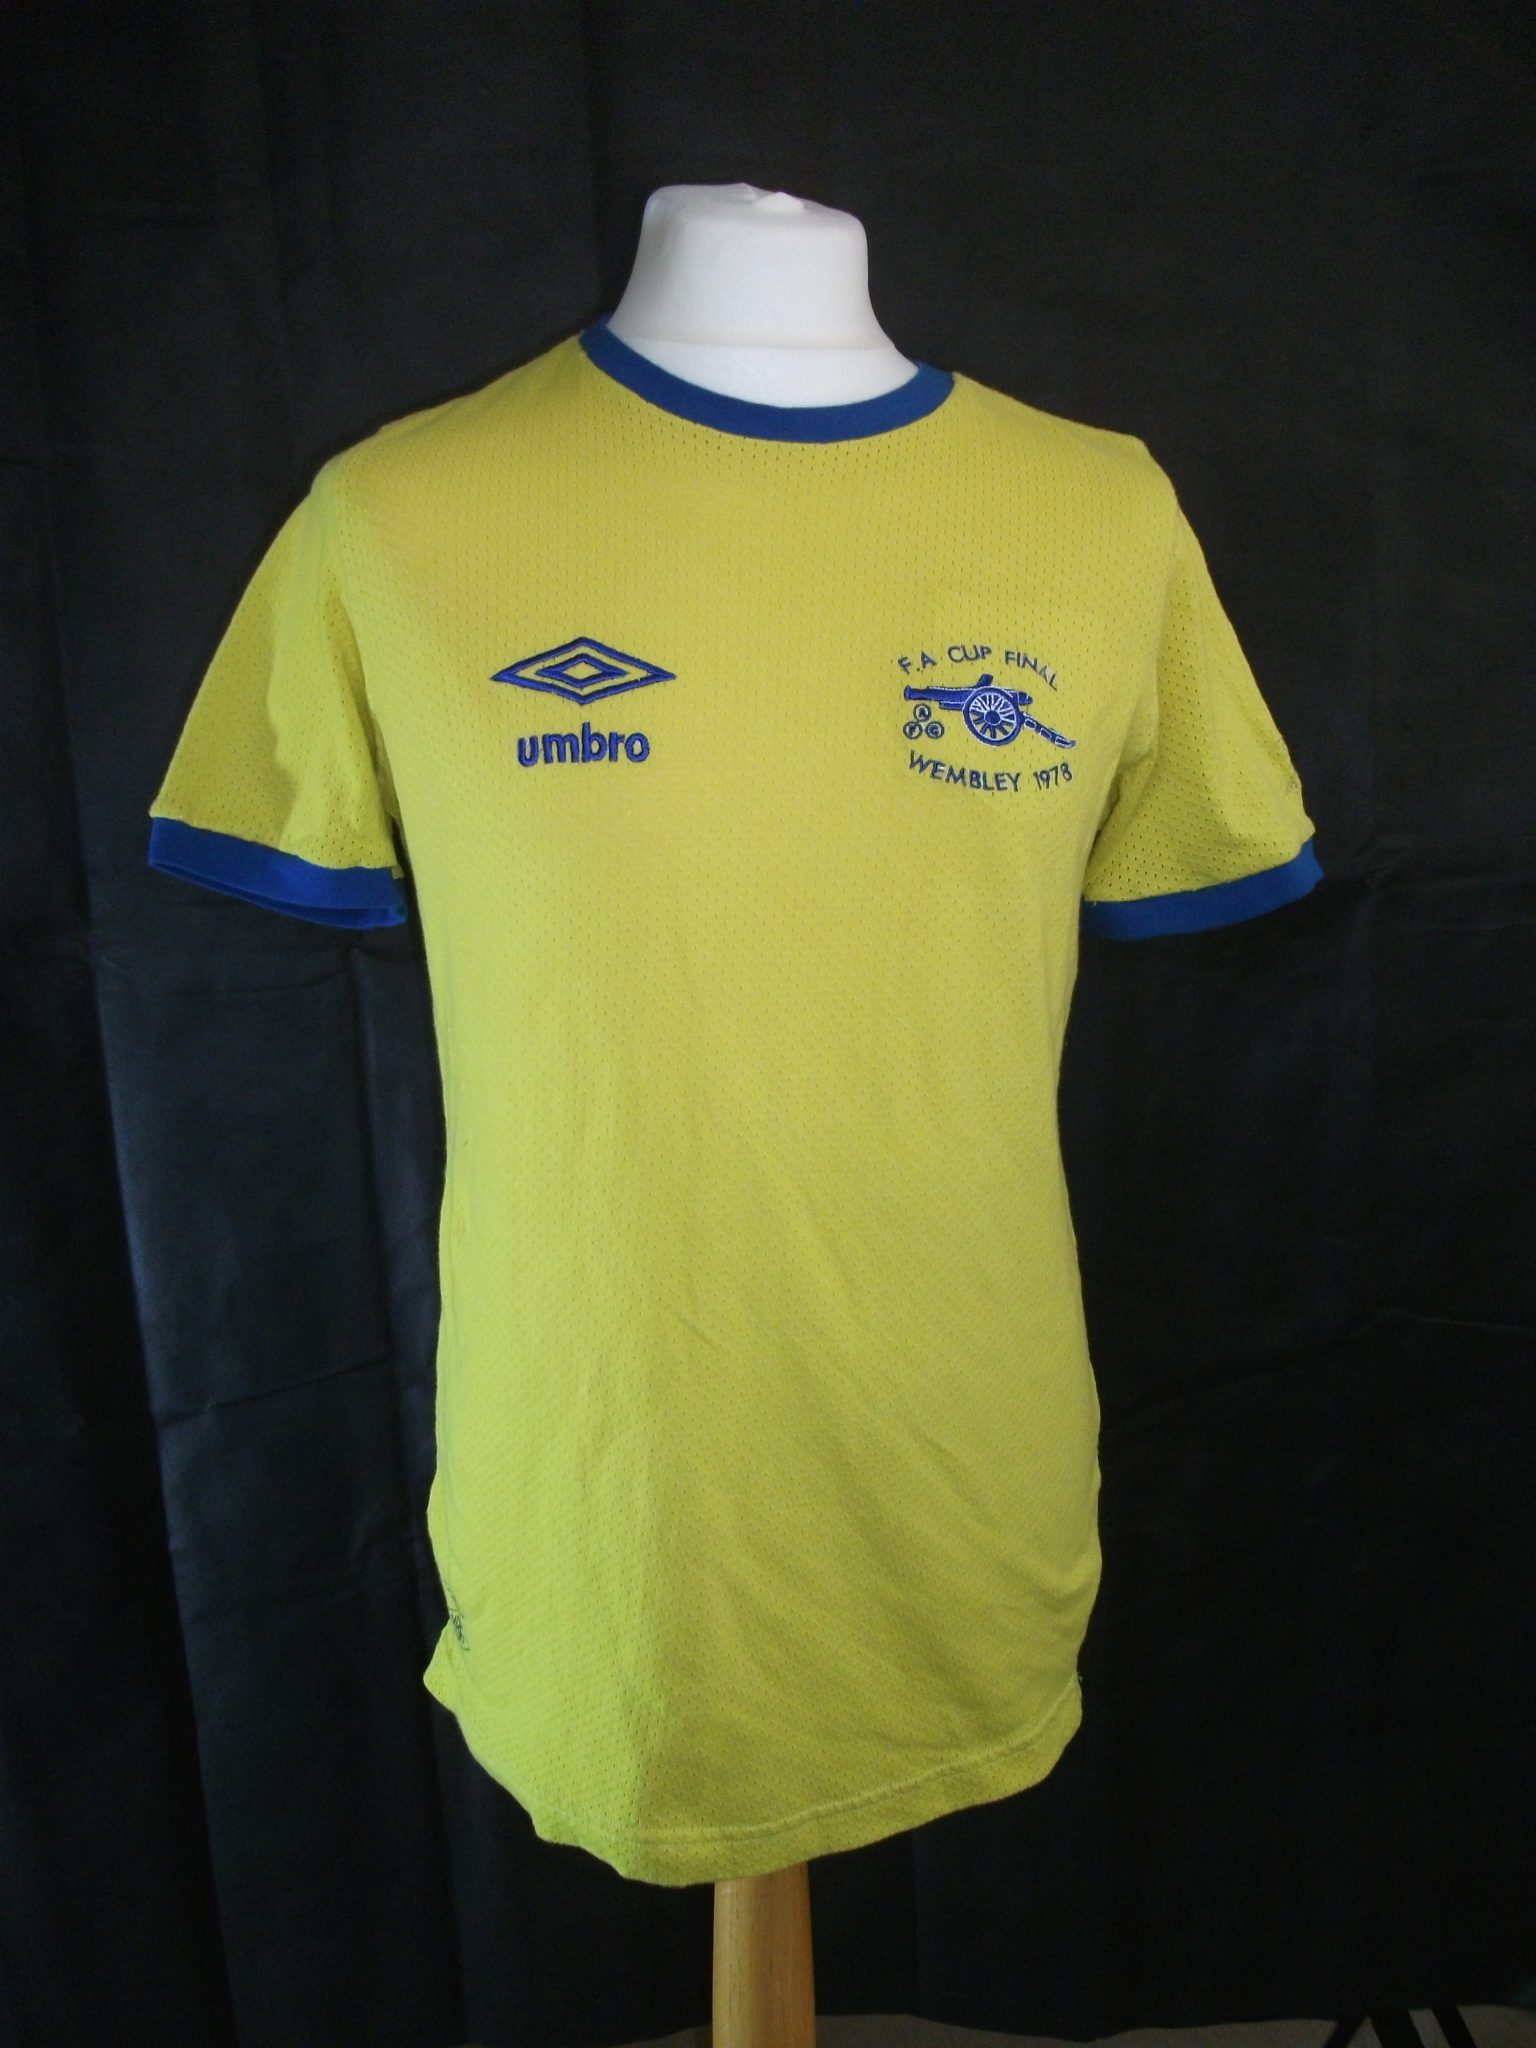 online retailer 5e46b 65656 Arsenal replica Umbro 1978 FA Cup Final kit.1 - On The Ball ...